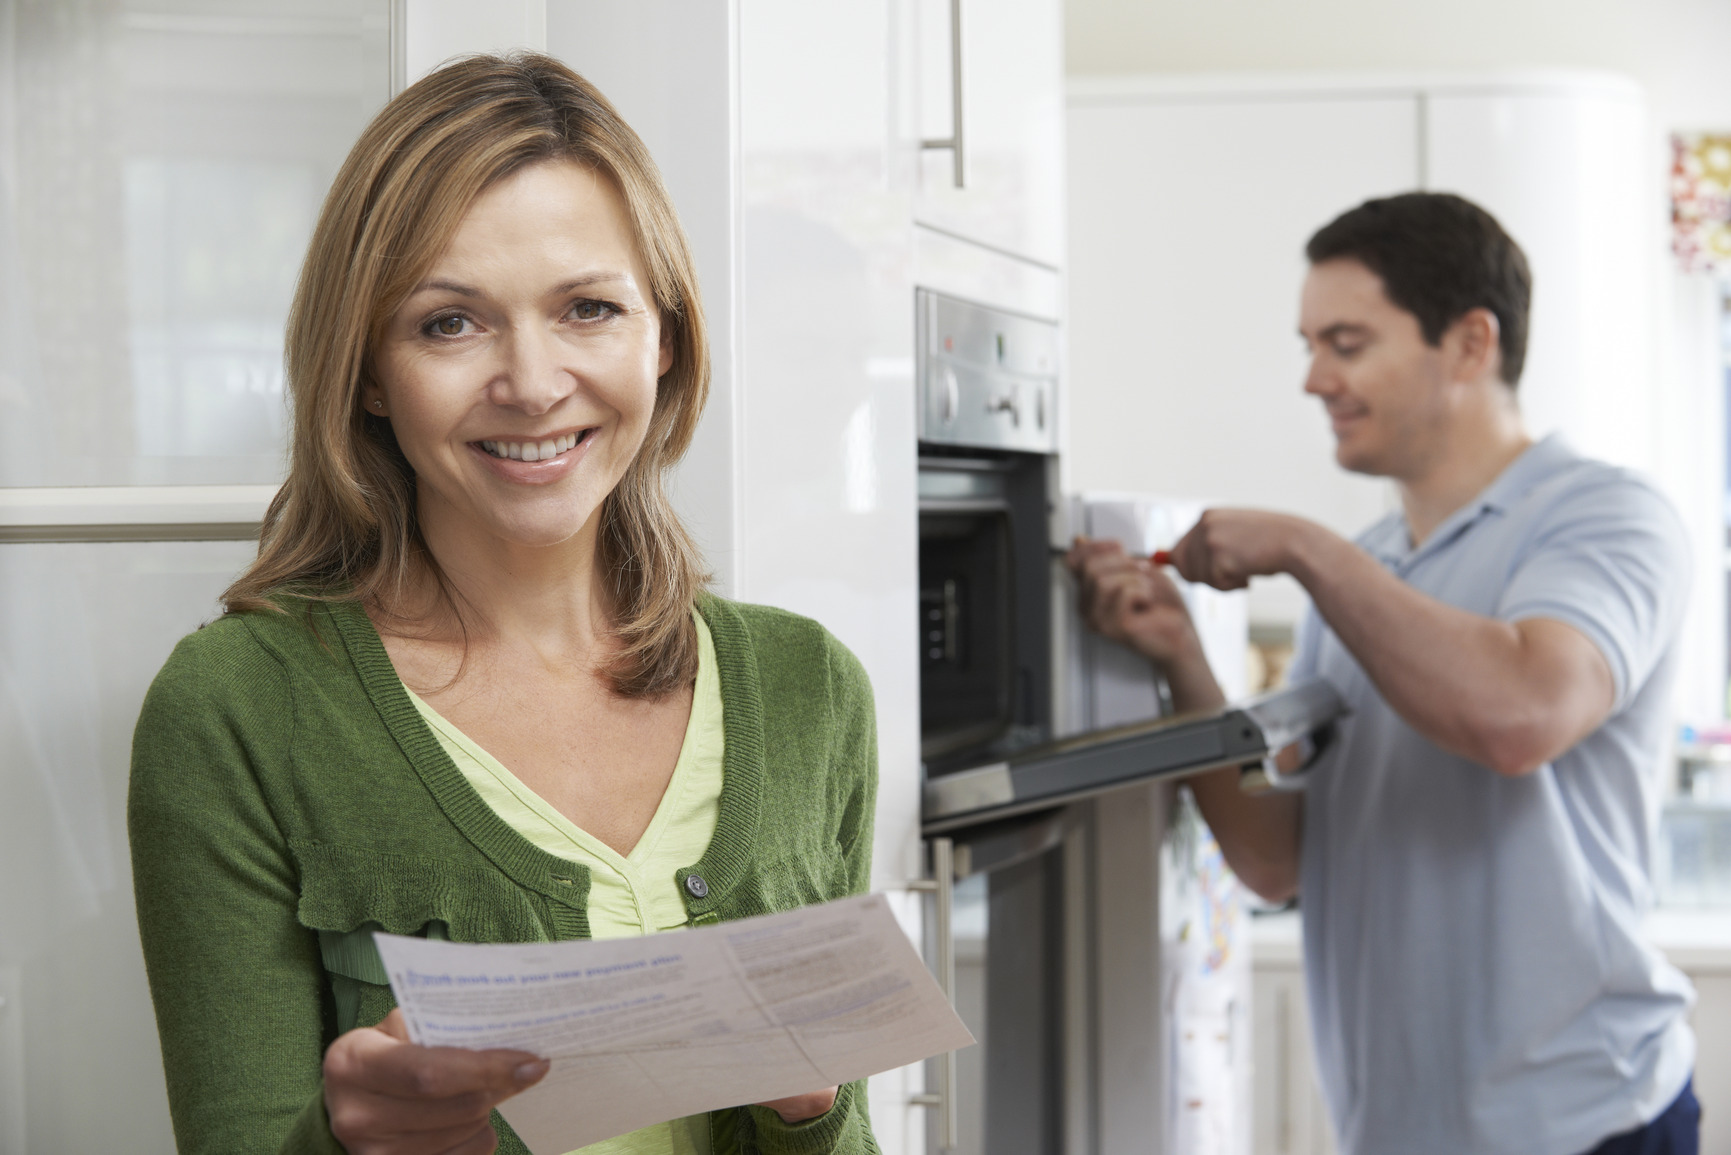 Appliance Tech Pro - Makes Troubleshooting Appliances Easy